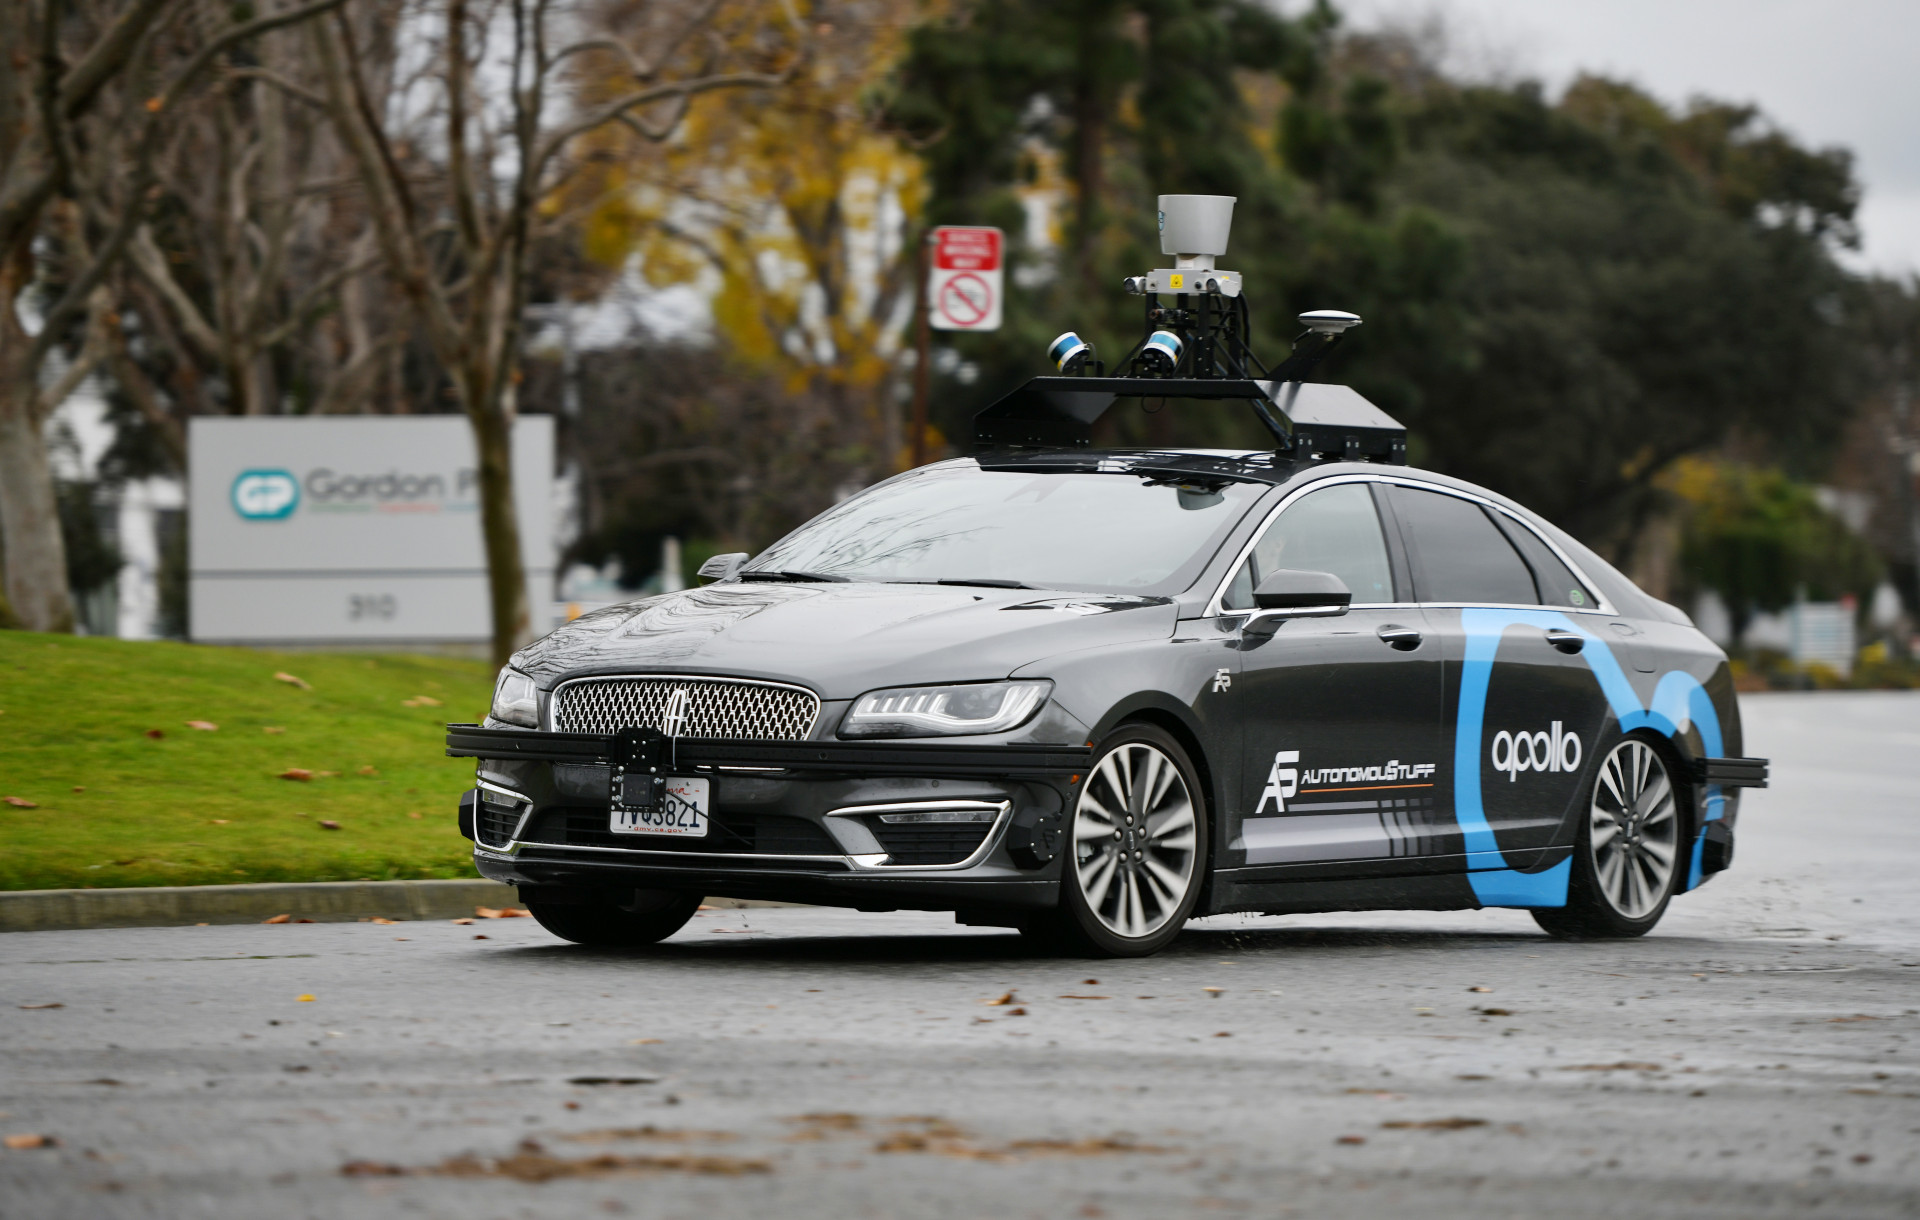 Baidu reportedly spinning off autonomous driving unit